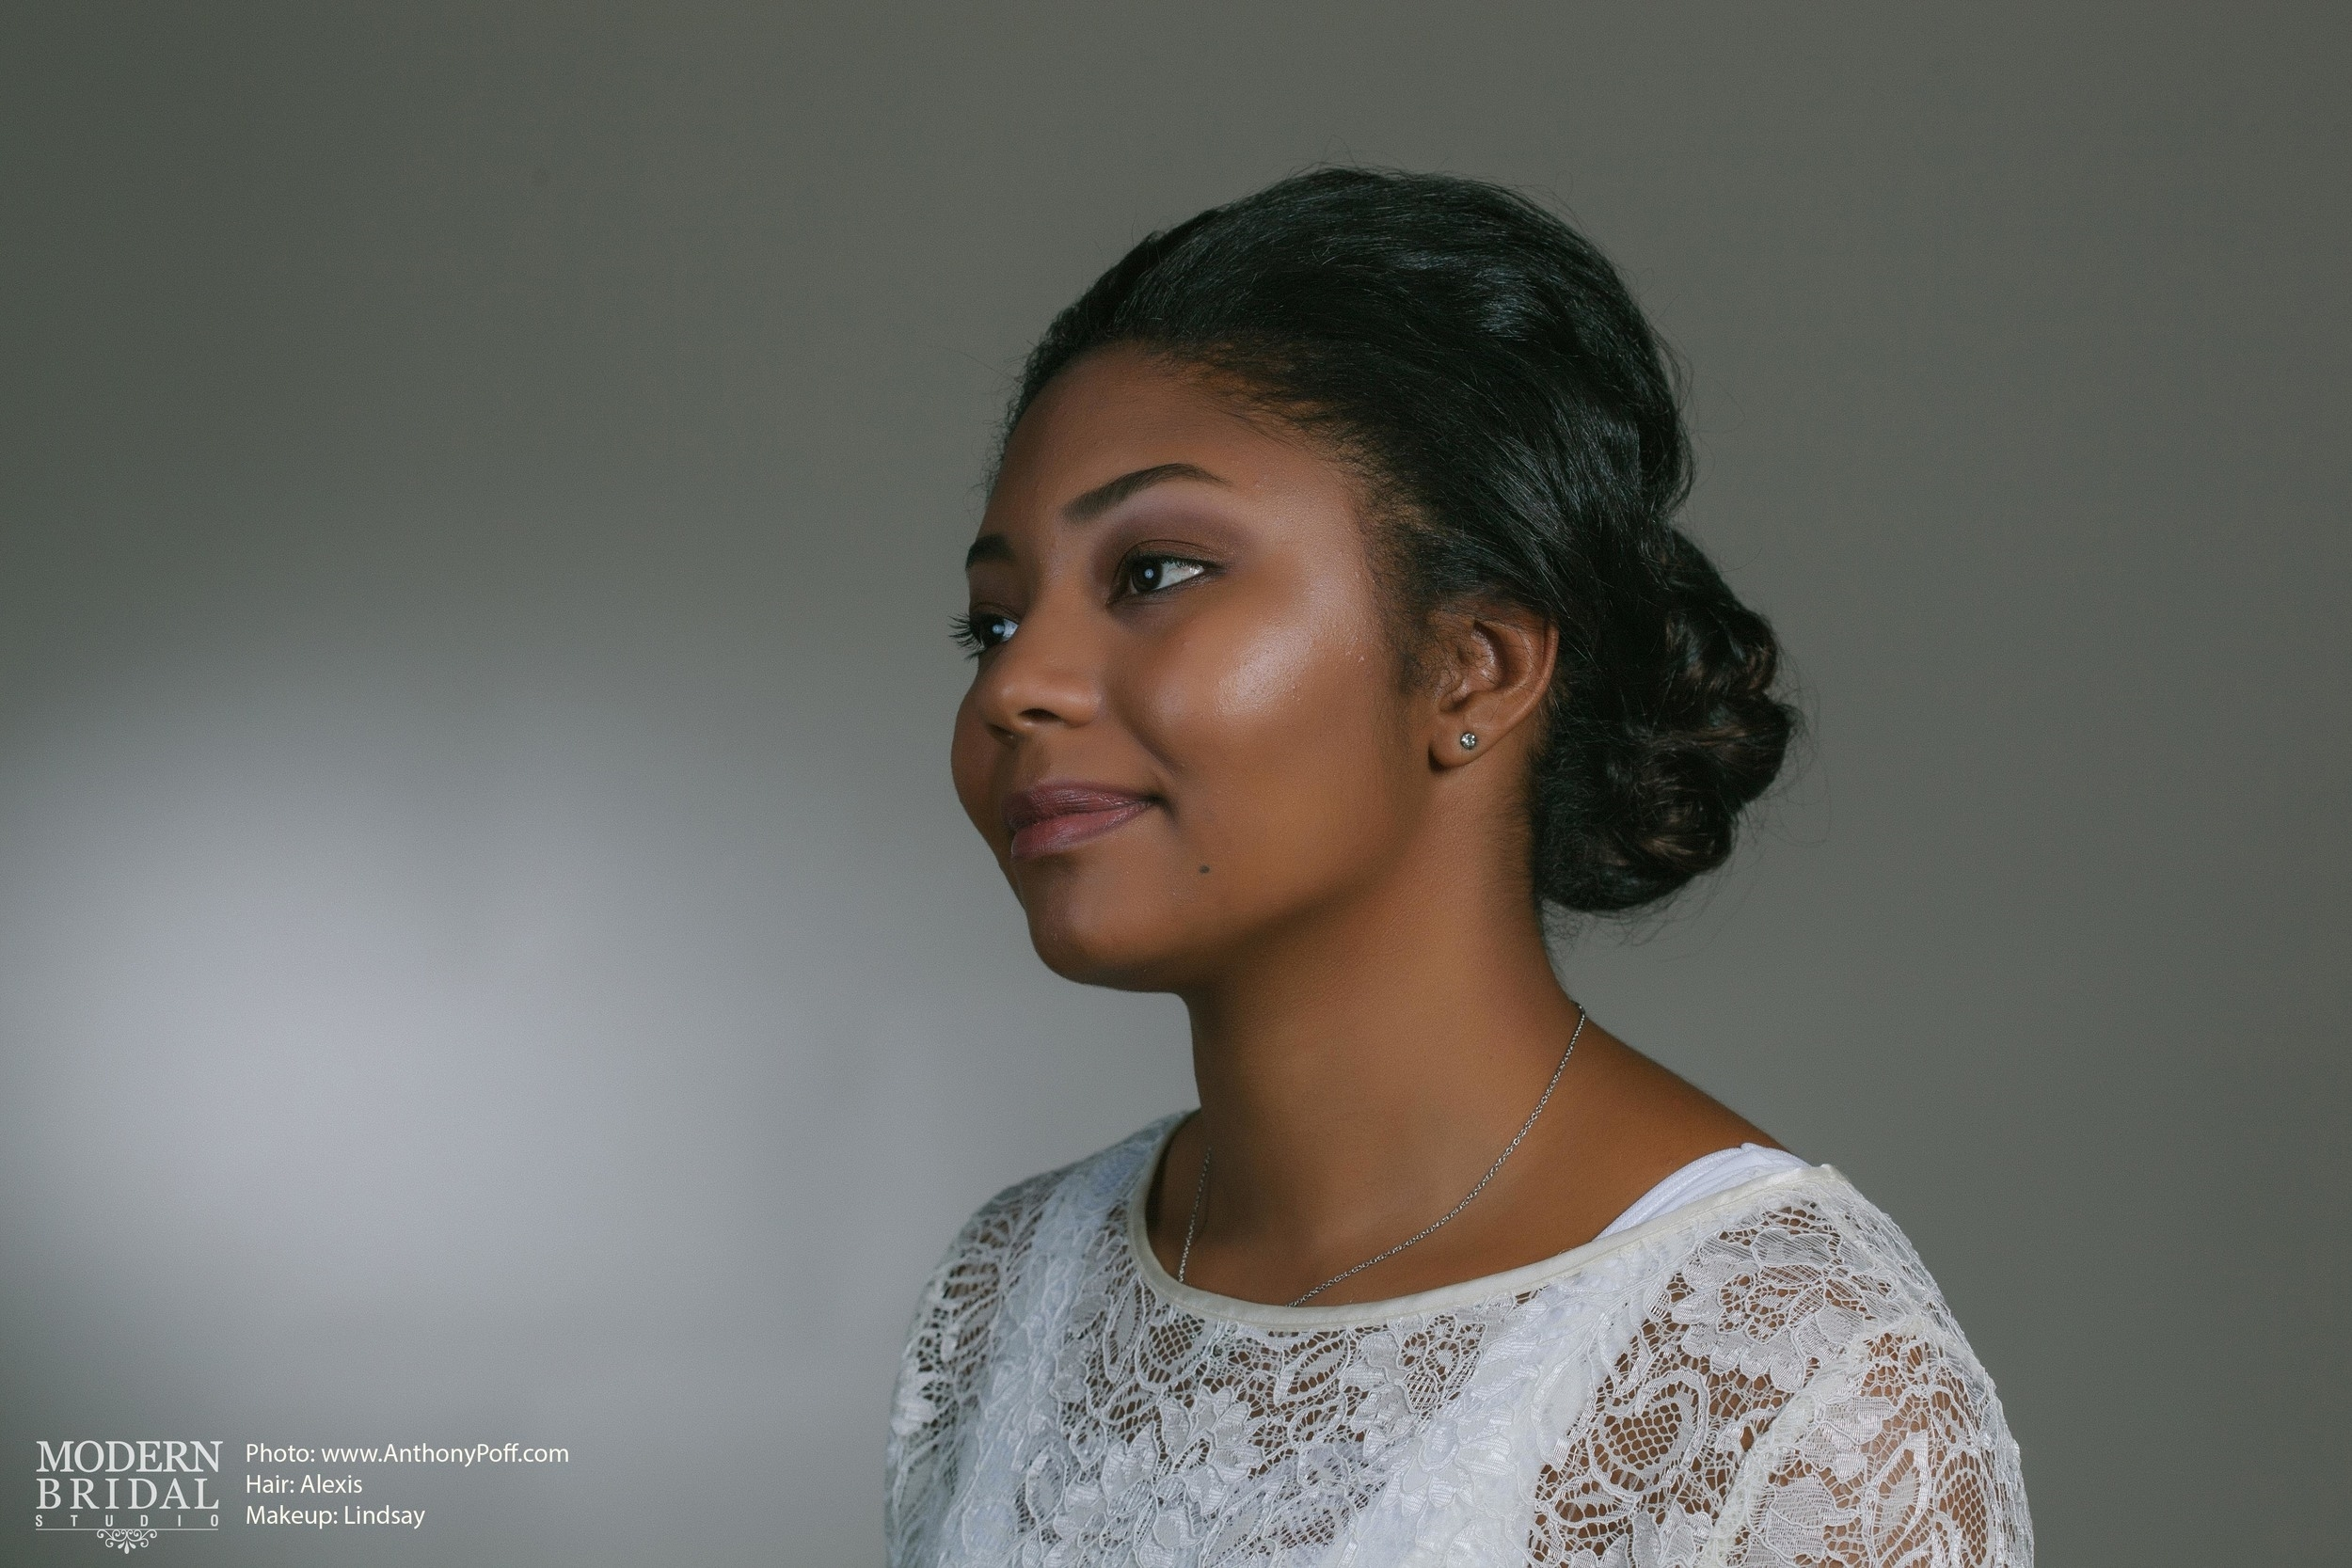 Modern Bridal Studio - Natural Beauty Shoot